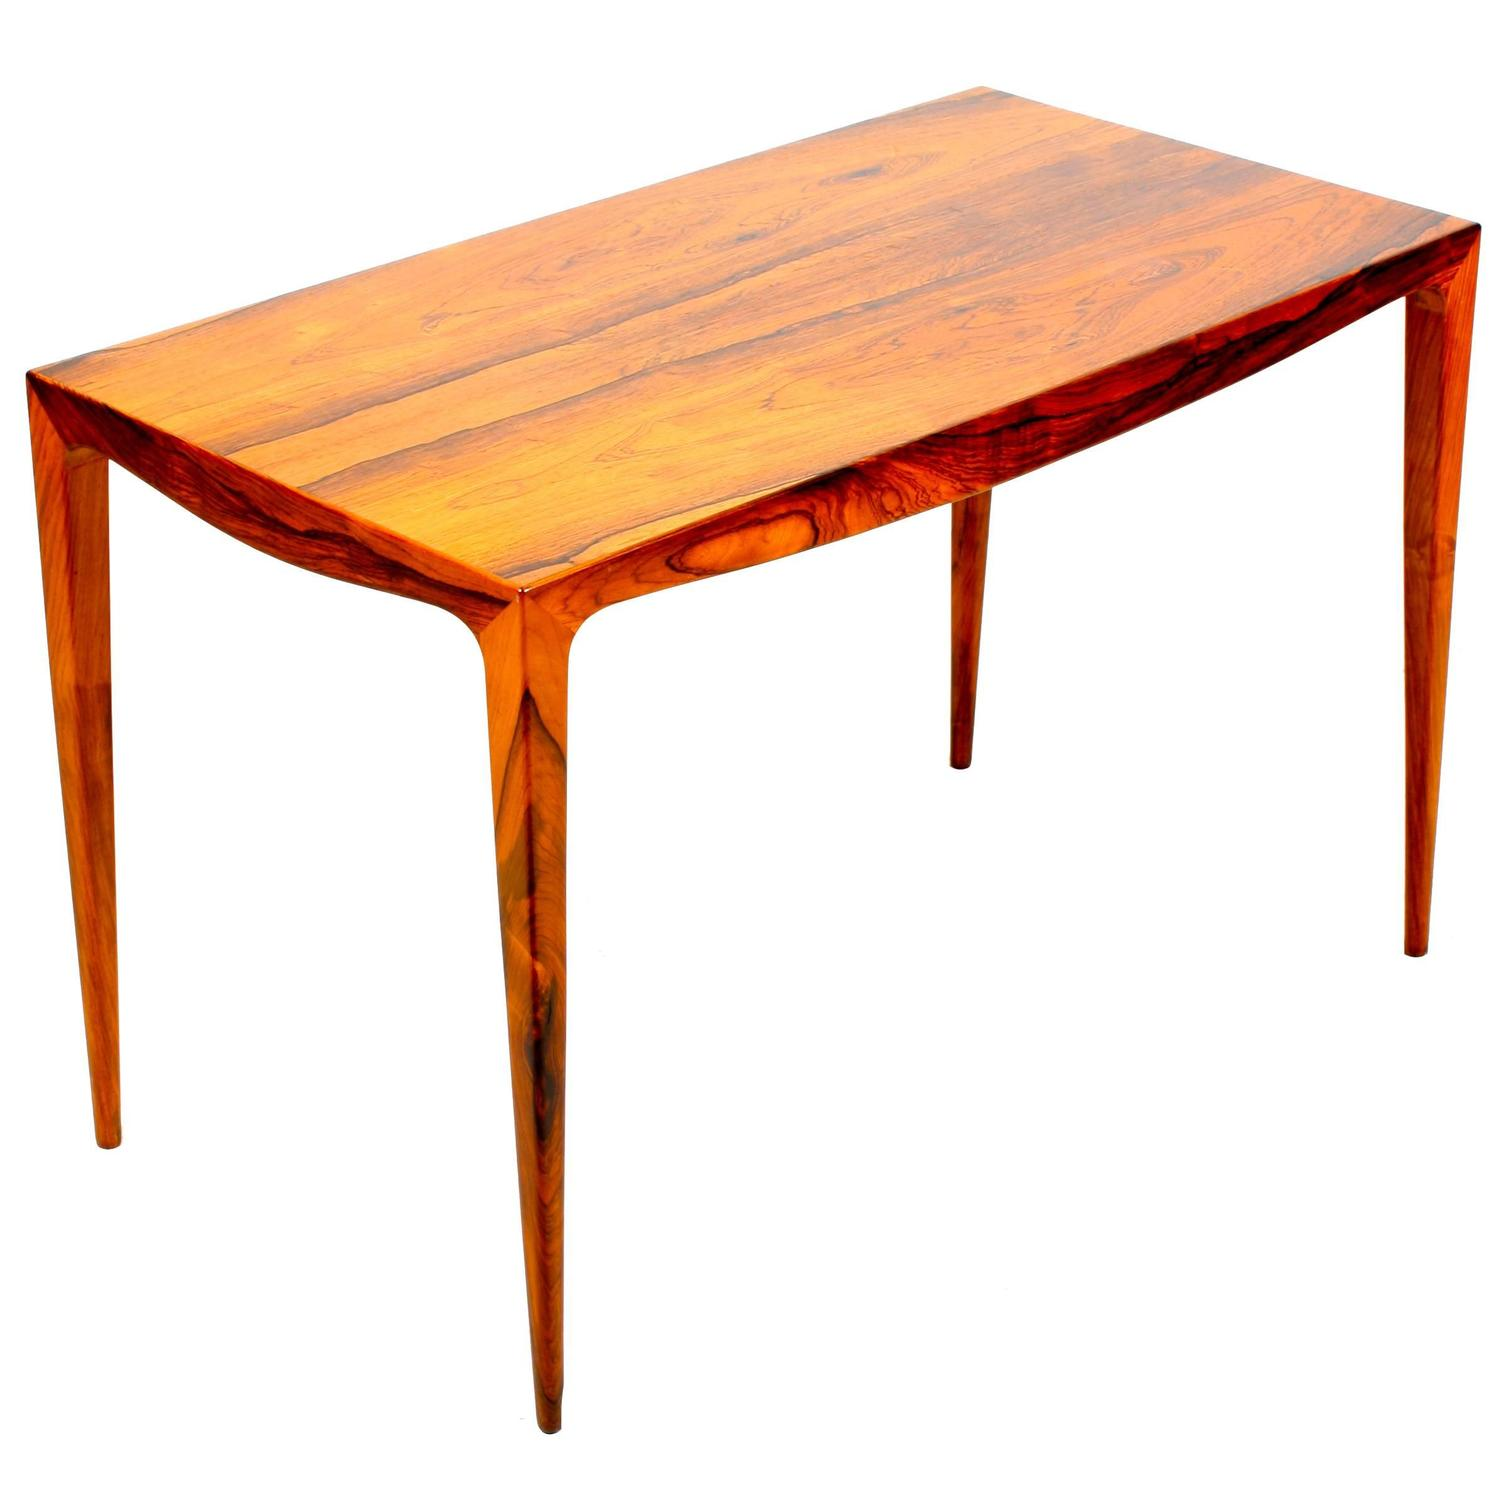 Elegant low table by wanscher for sale at 1stdibs for Low sofa table